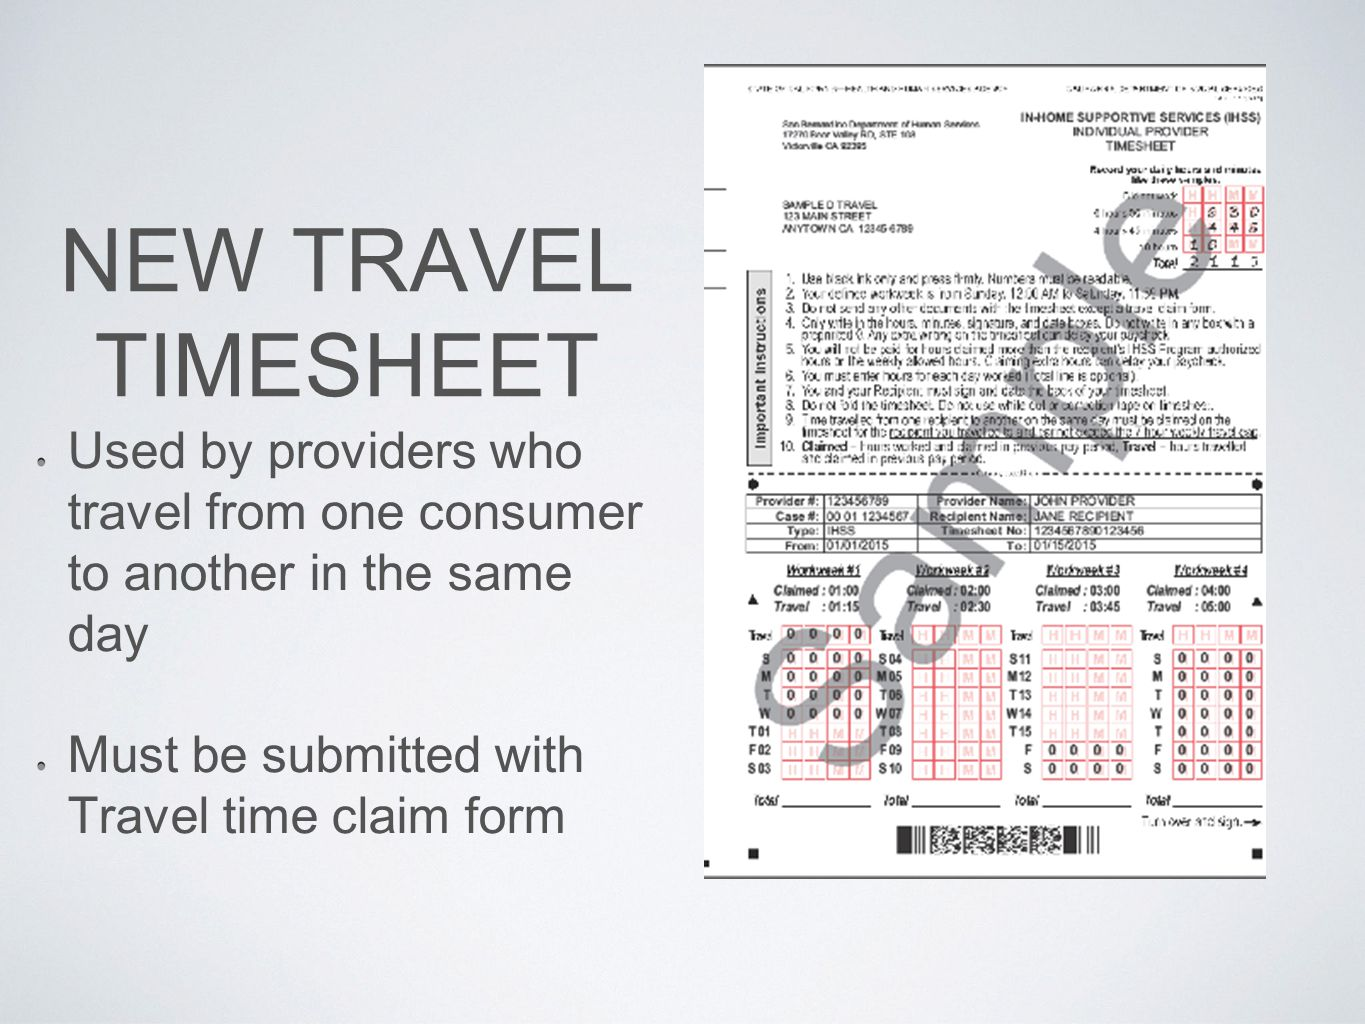 NEW TRAVEL TIMESHEET Used by providers who travel from one consumer to another in the same day.